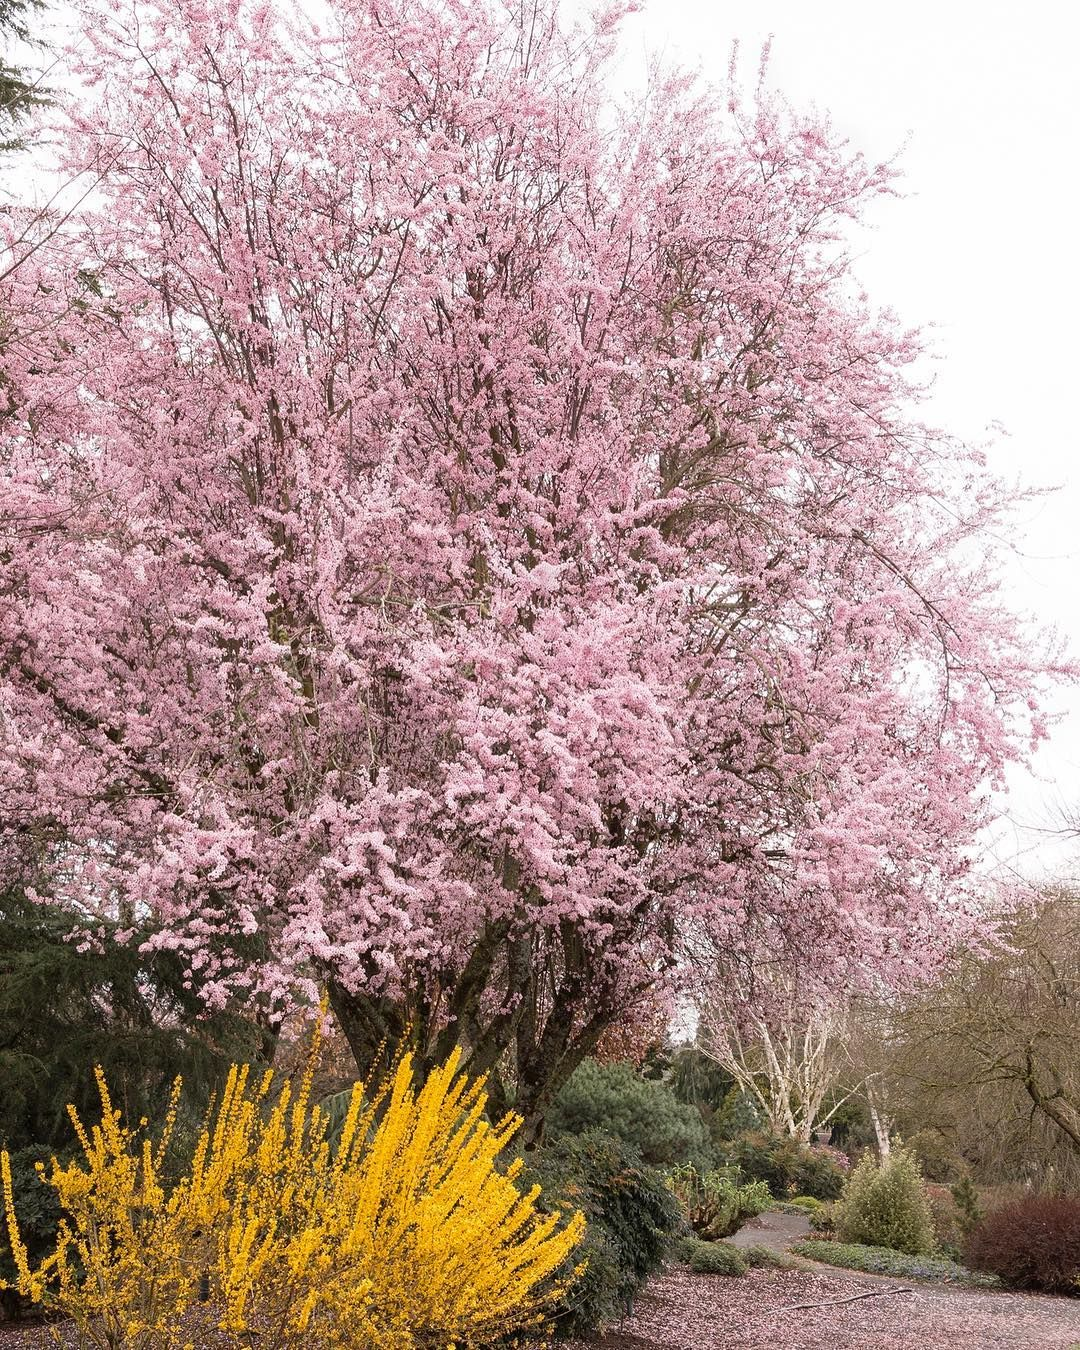 The Thundercloud Purple Leaf Plum Is A Stunning Landscape Specimen With Pale Pink Single Blooms In The Spring And Coppery Purple Folia Tradgardsvaxter Tradgard